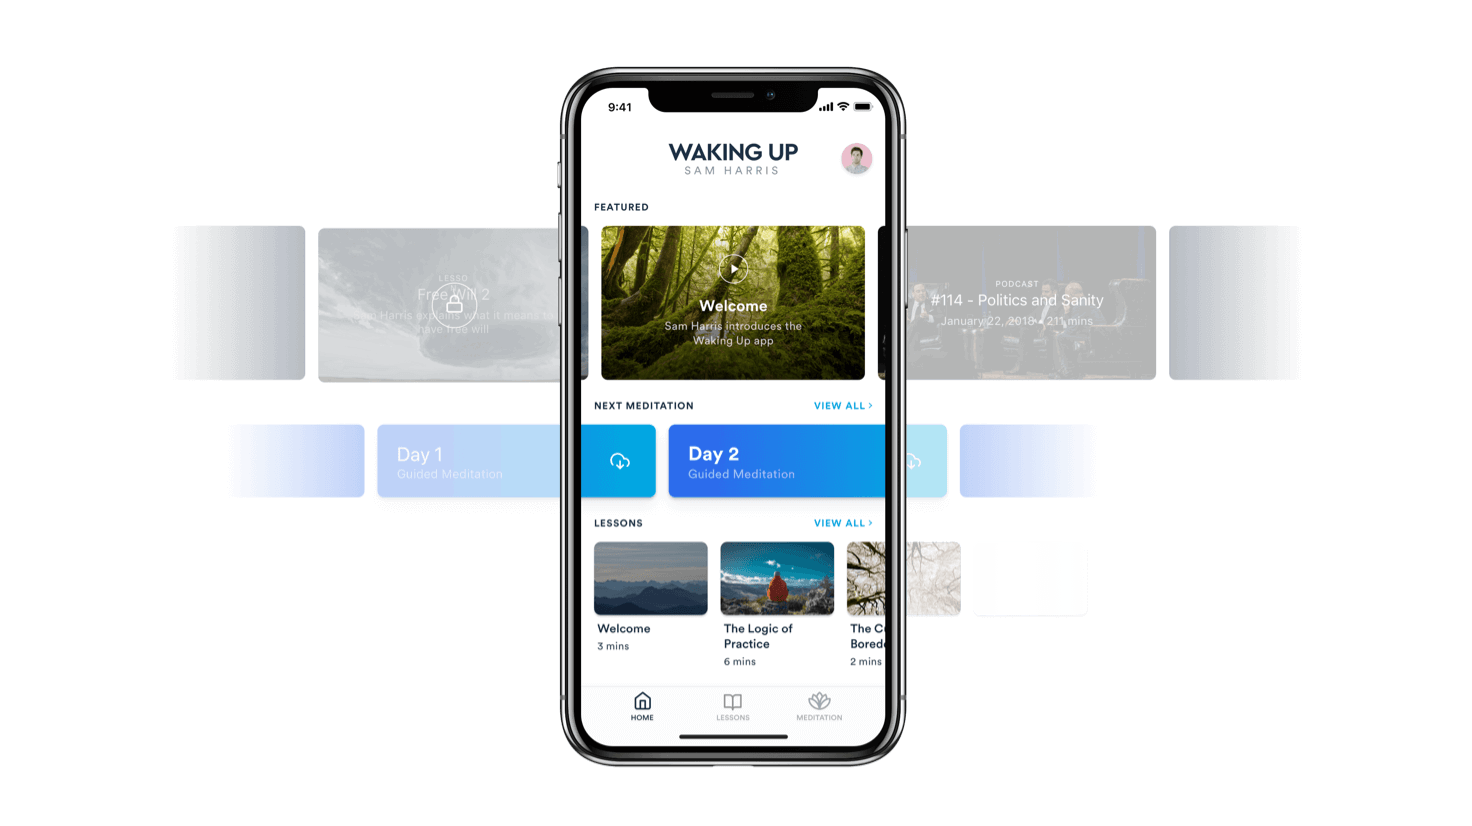 Waking up app homepage